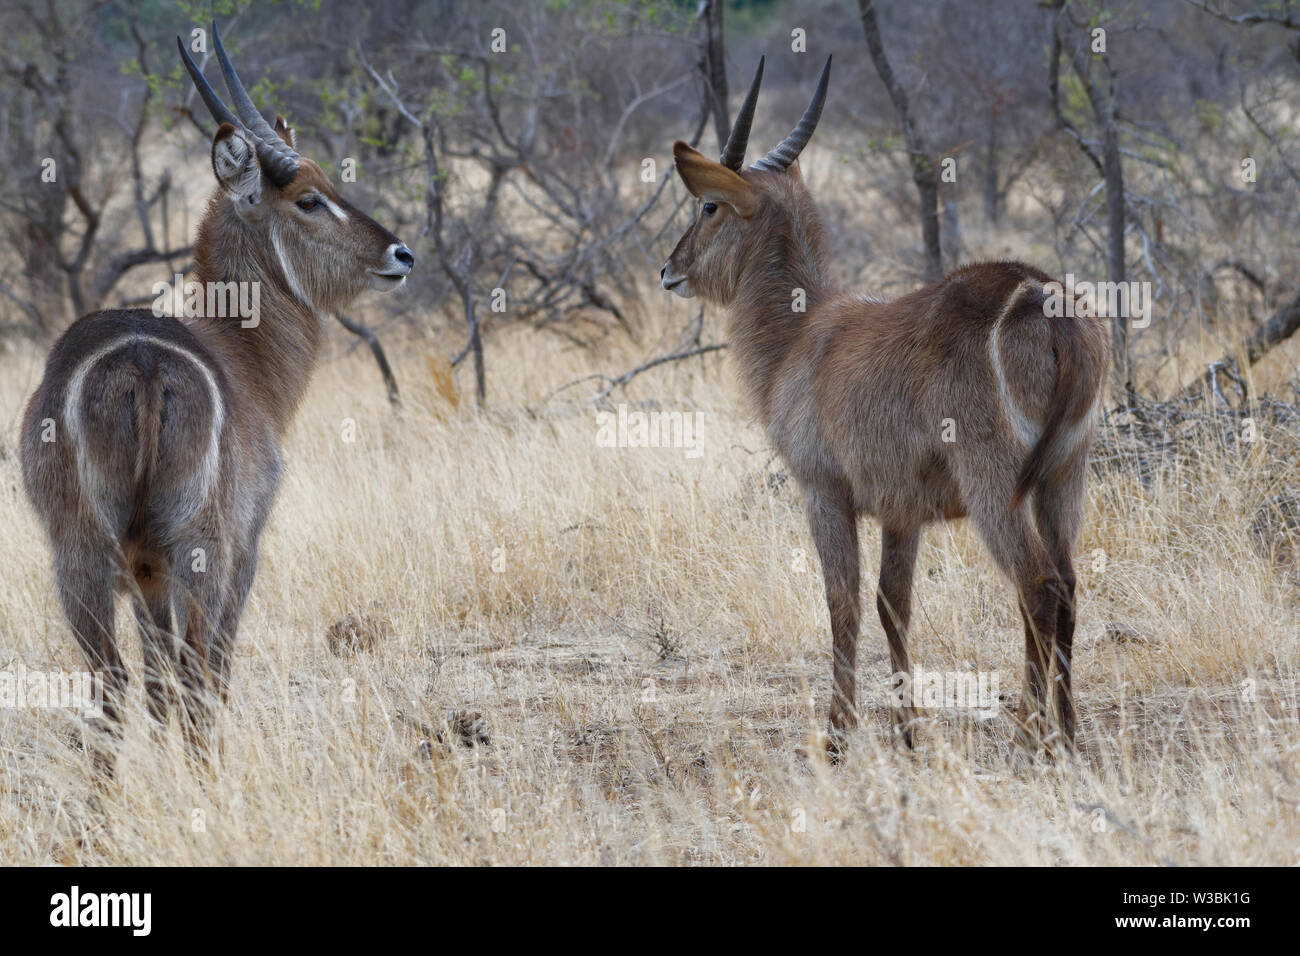 Common waterbucks (Kobus ellipsiprymnus), two adult males standing in the dry grassland, attentive, Kruger National Park, South Africa, Africa - Stock Image